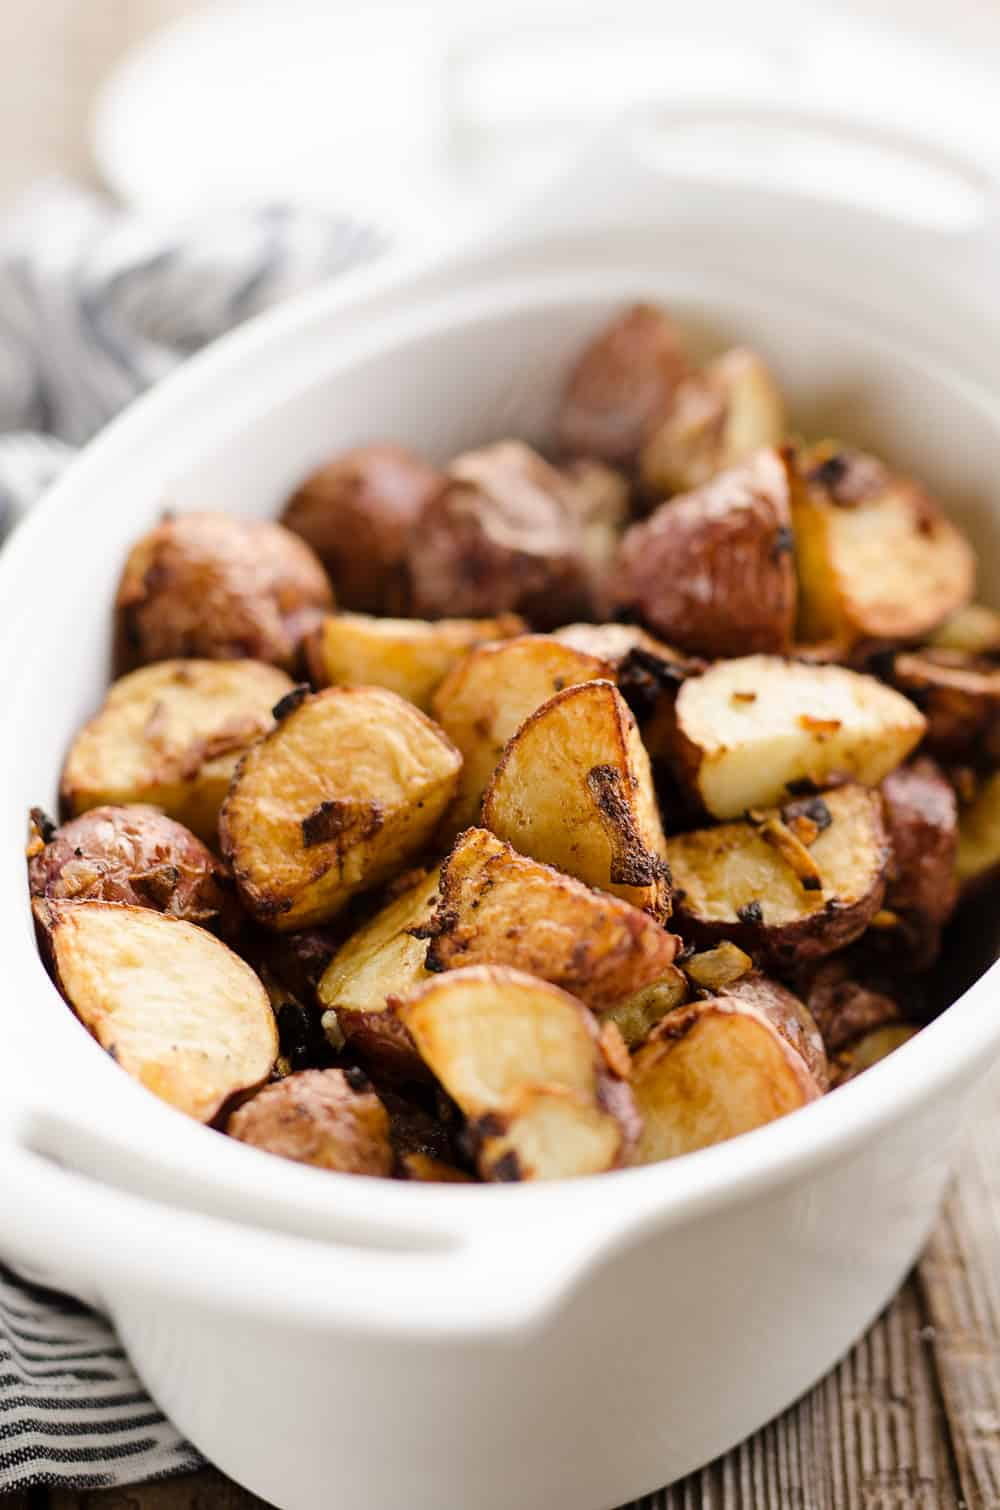 Airfryer Crispy Roasted Onion Potatoes 20 Minute Recipe